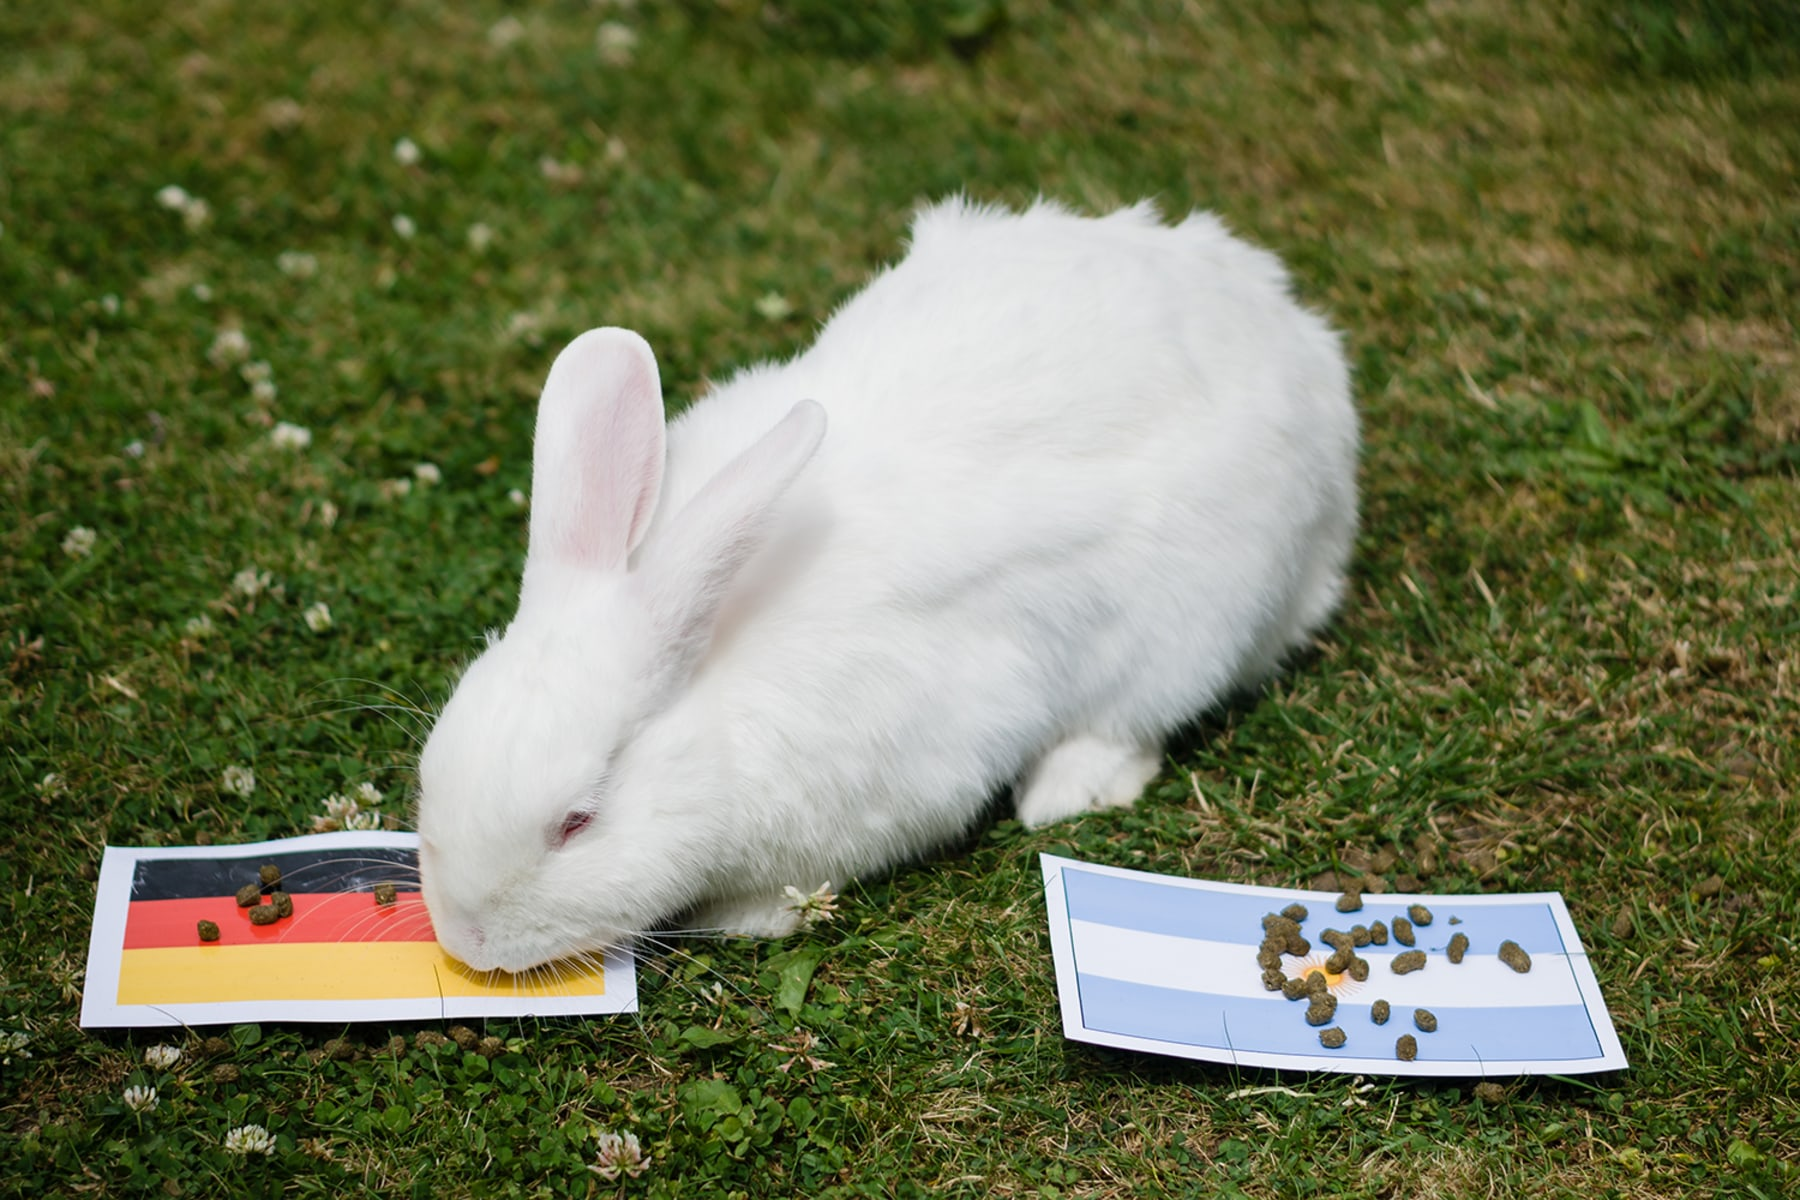 so hopping cute bunnies around the world today com